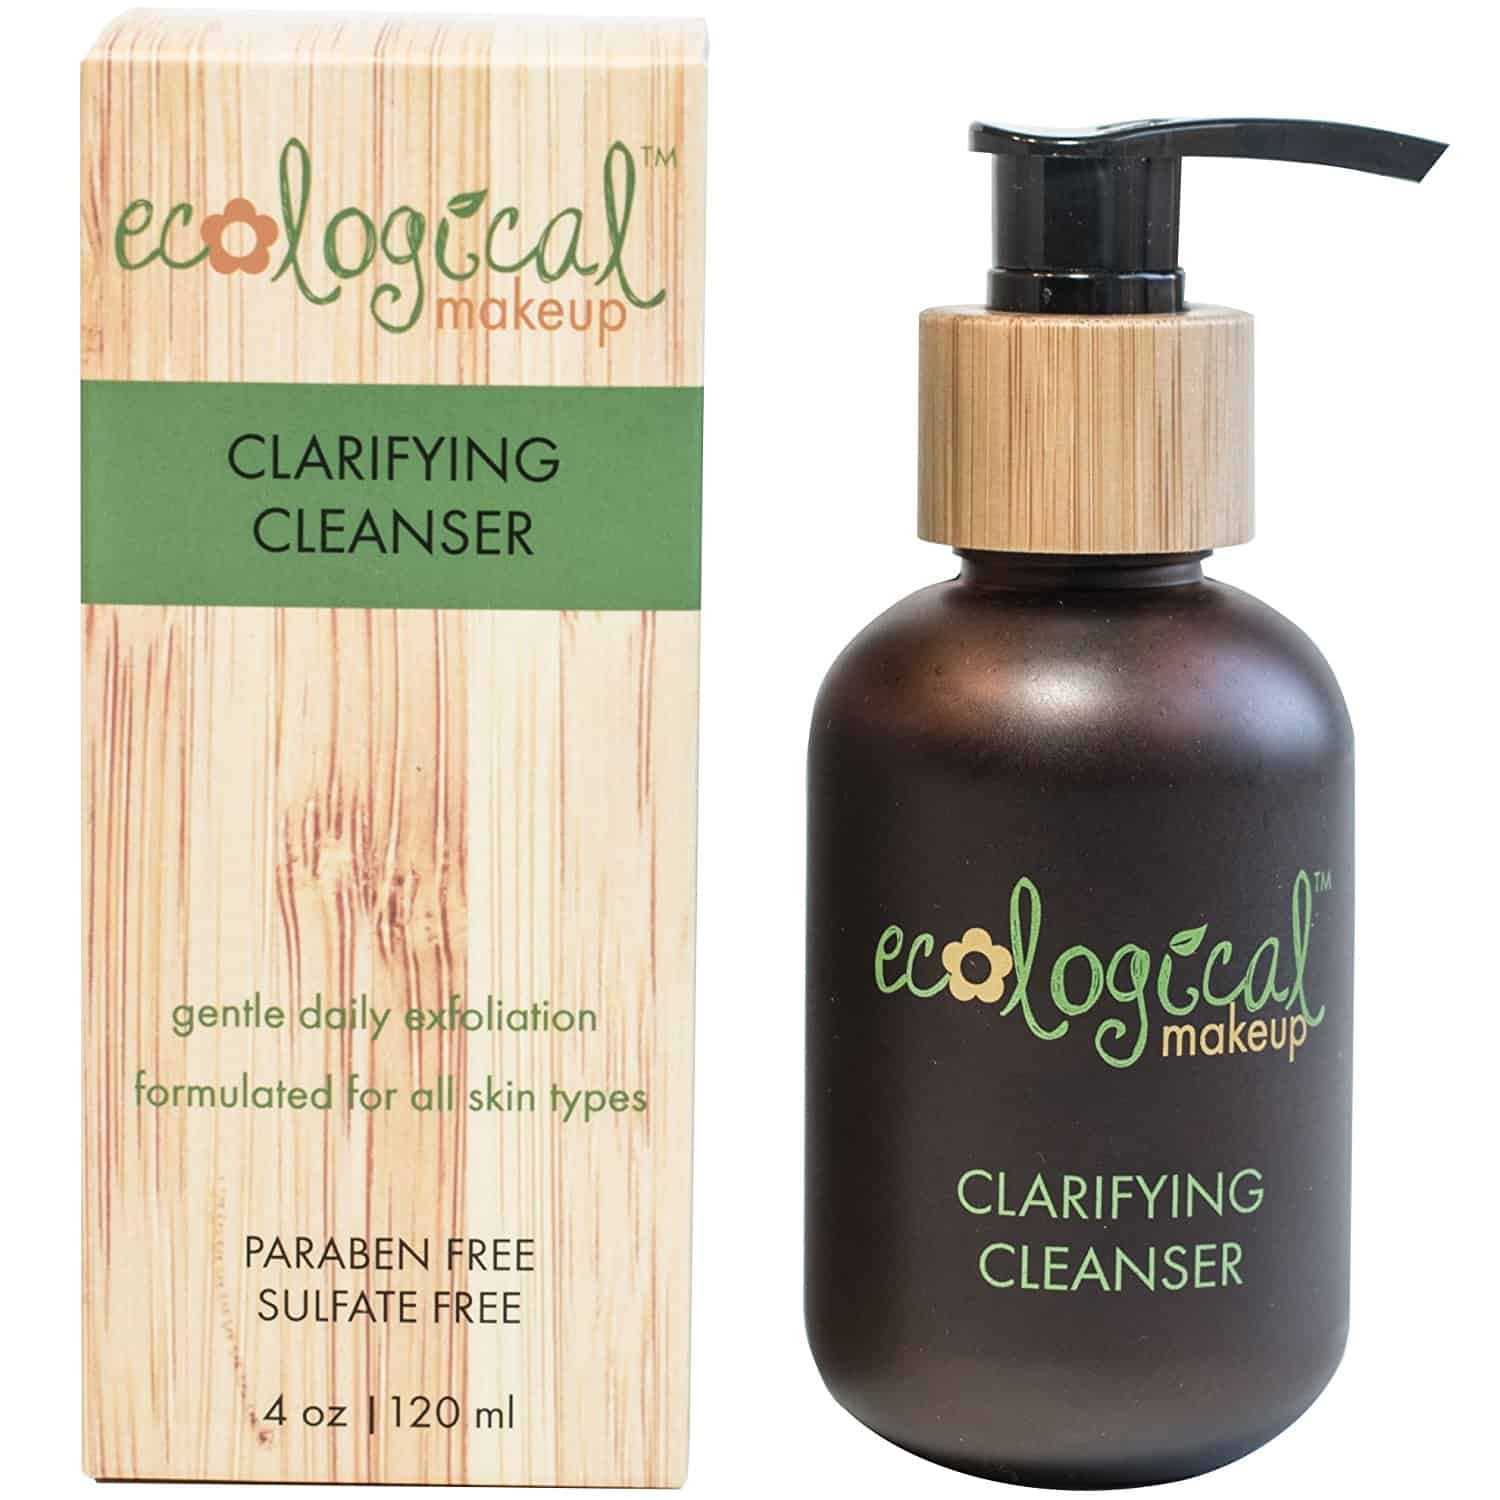 Ecological Makeup Clarifying Cleanser Natural Cleanser